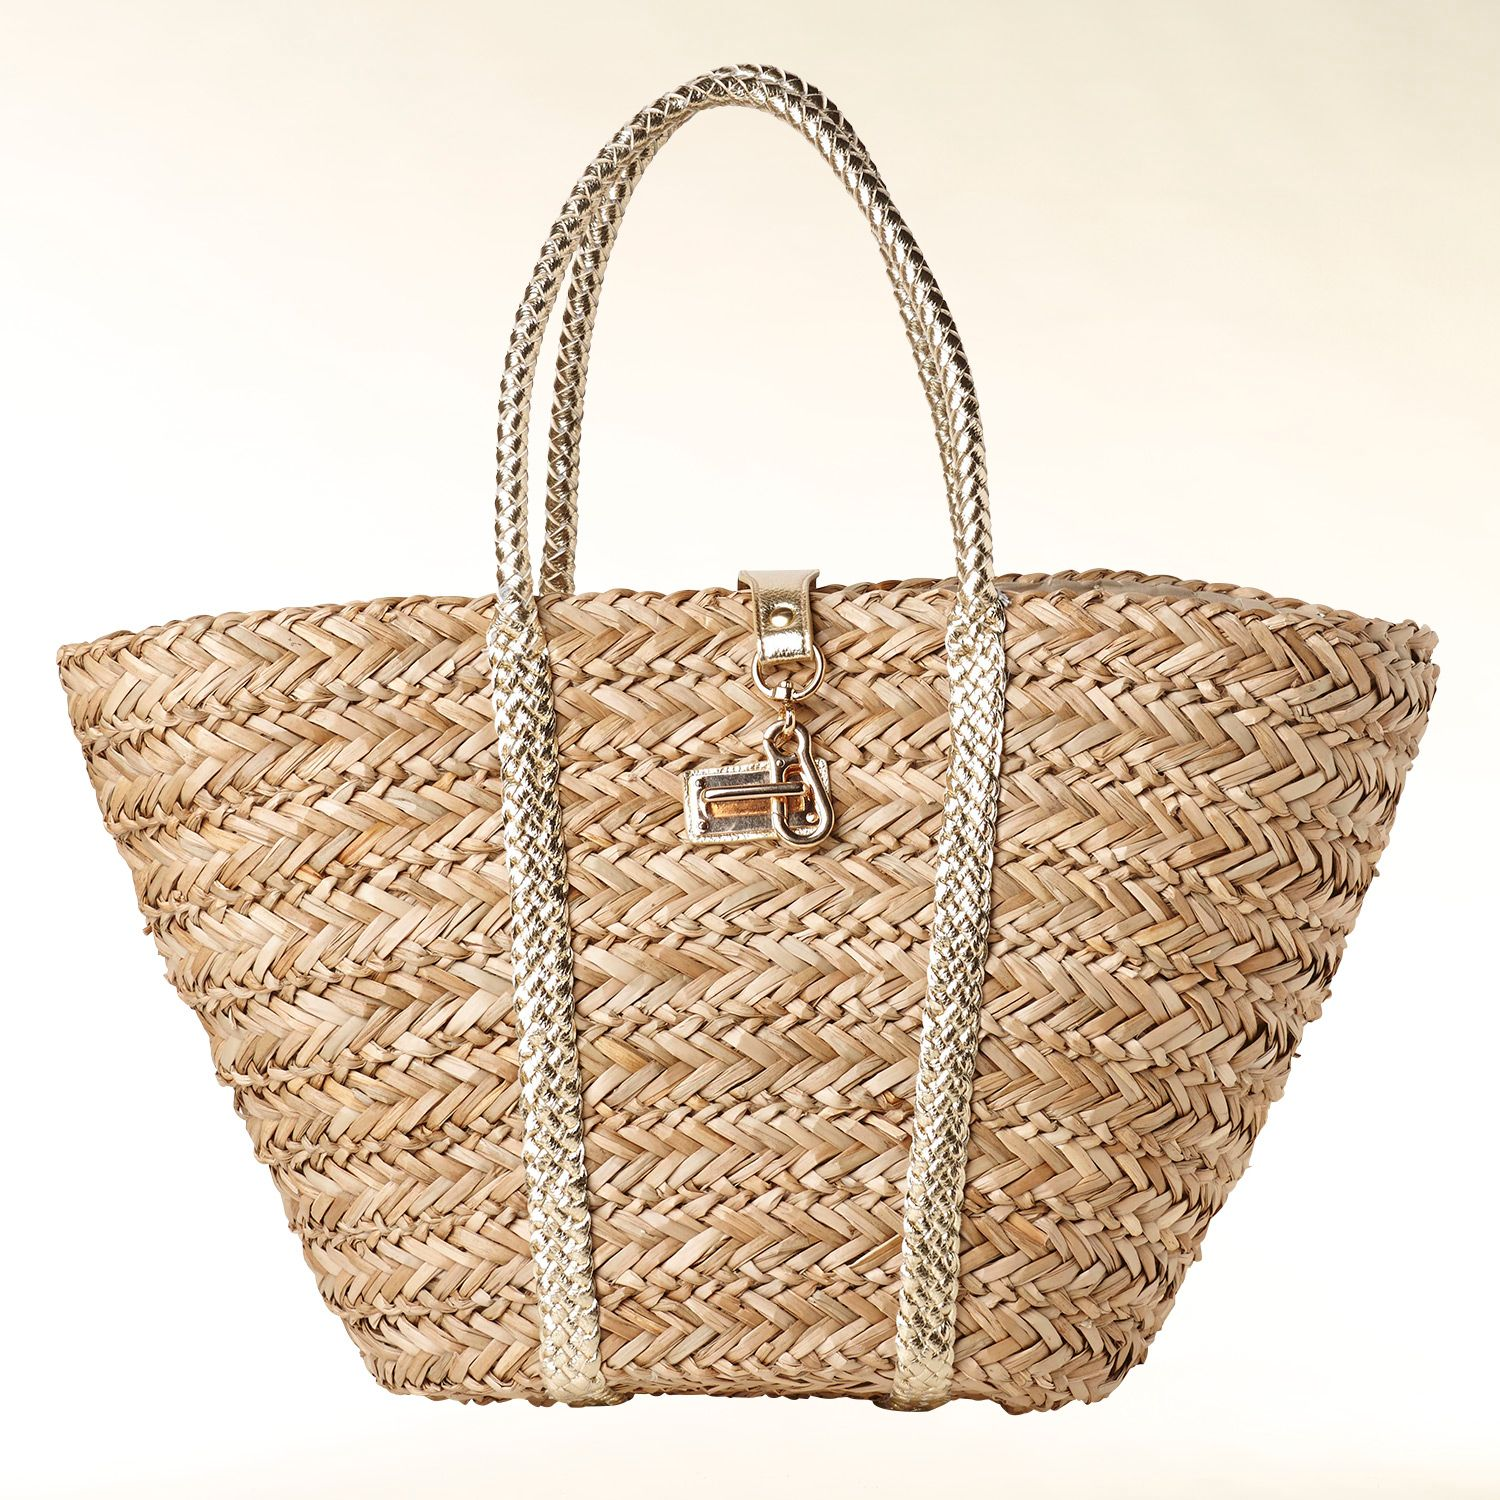 Straw bag with braid handles